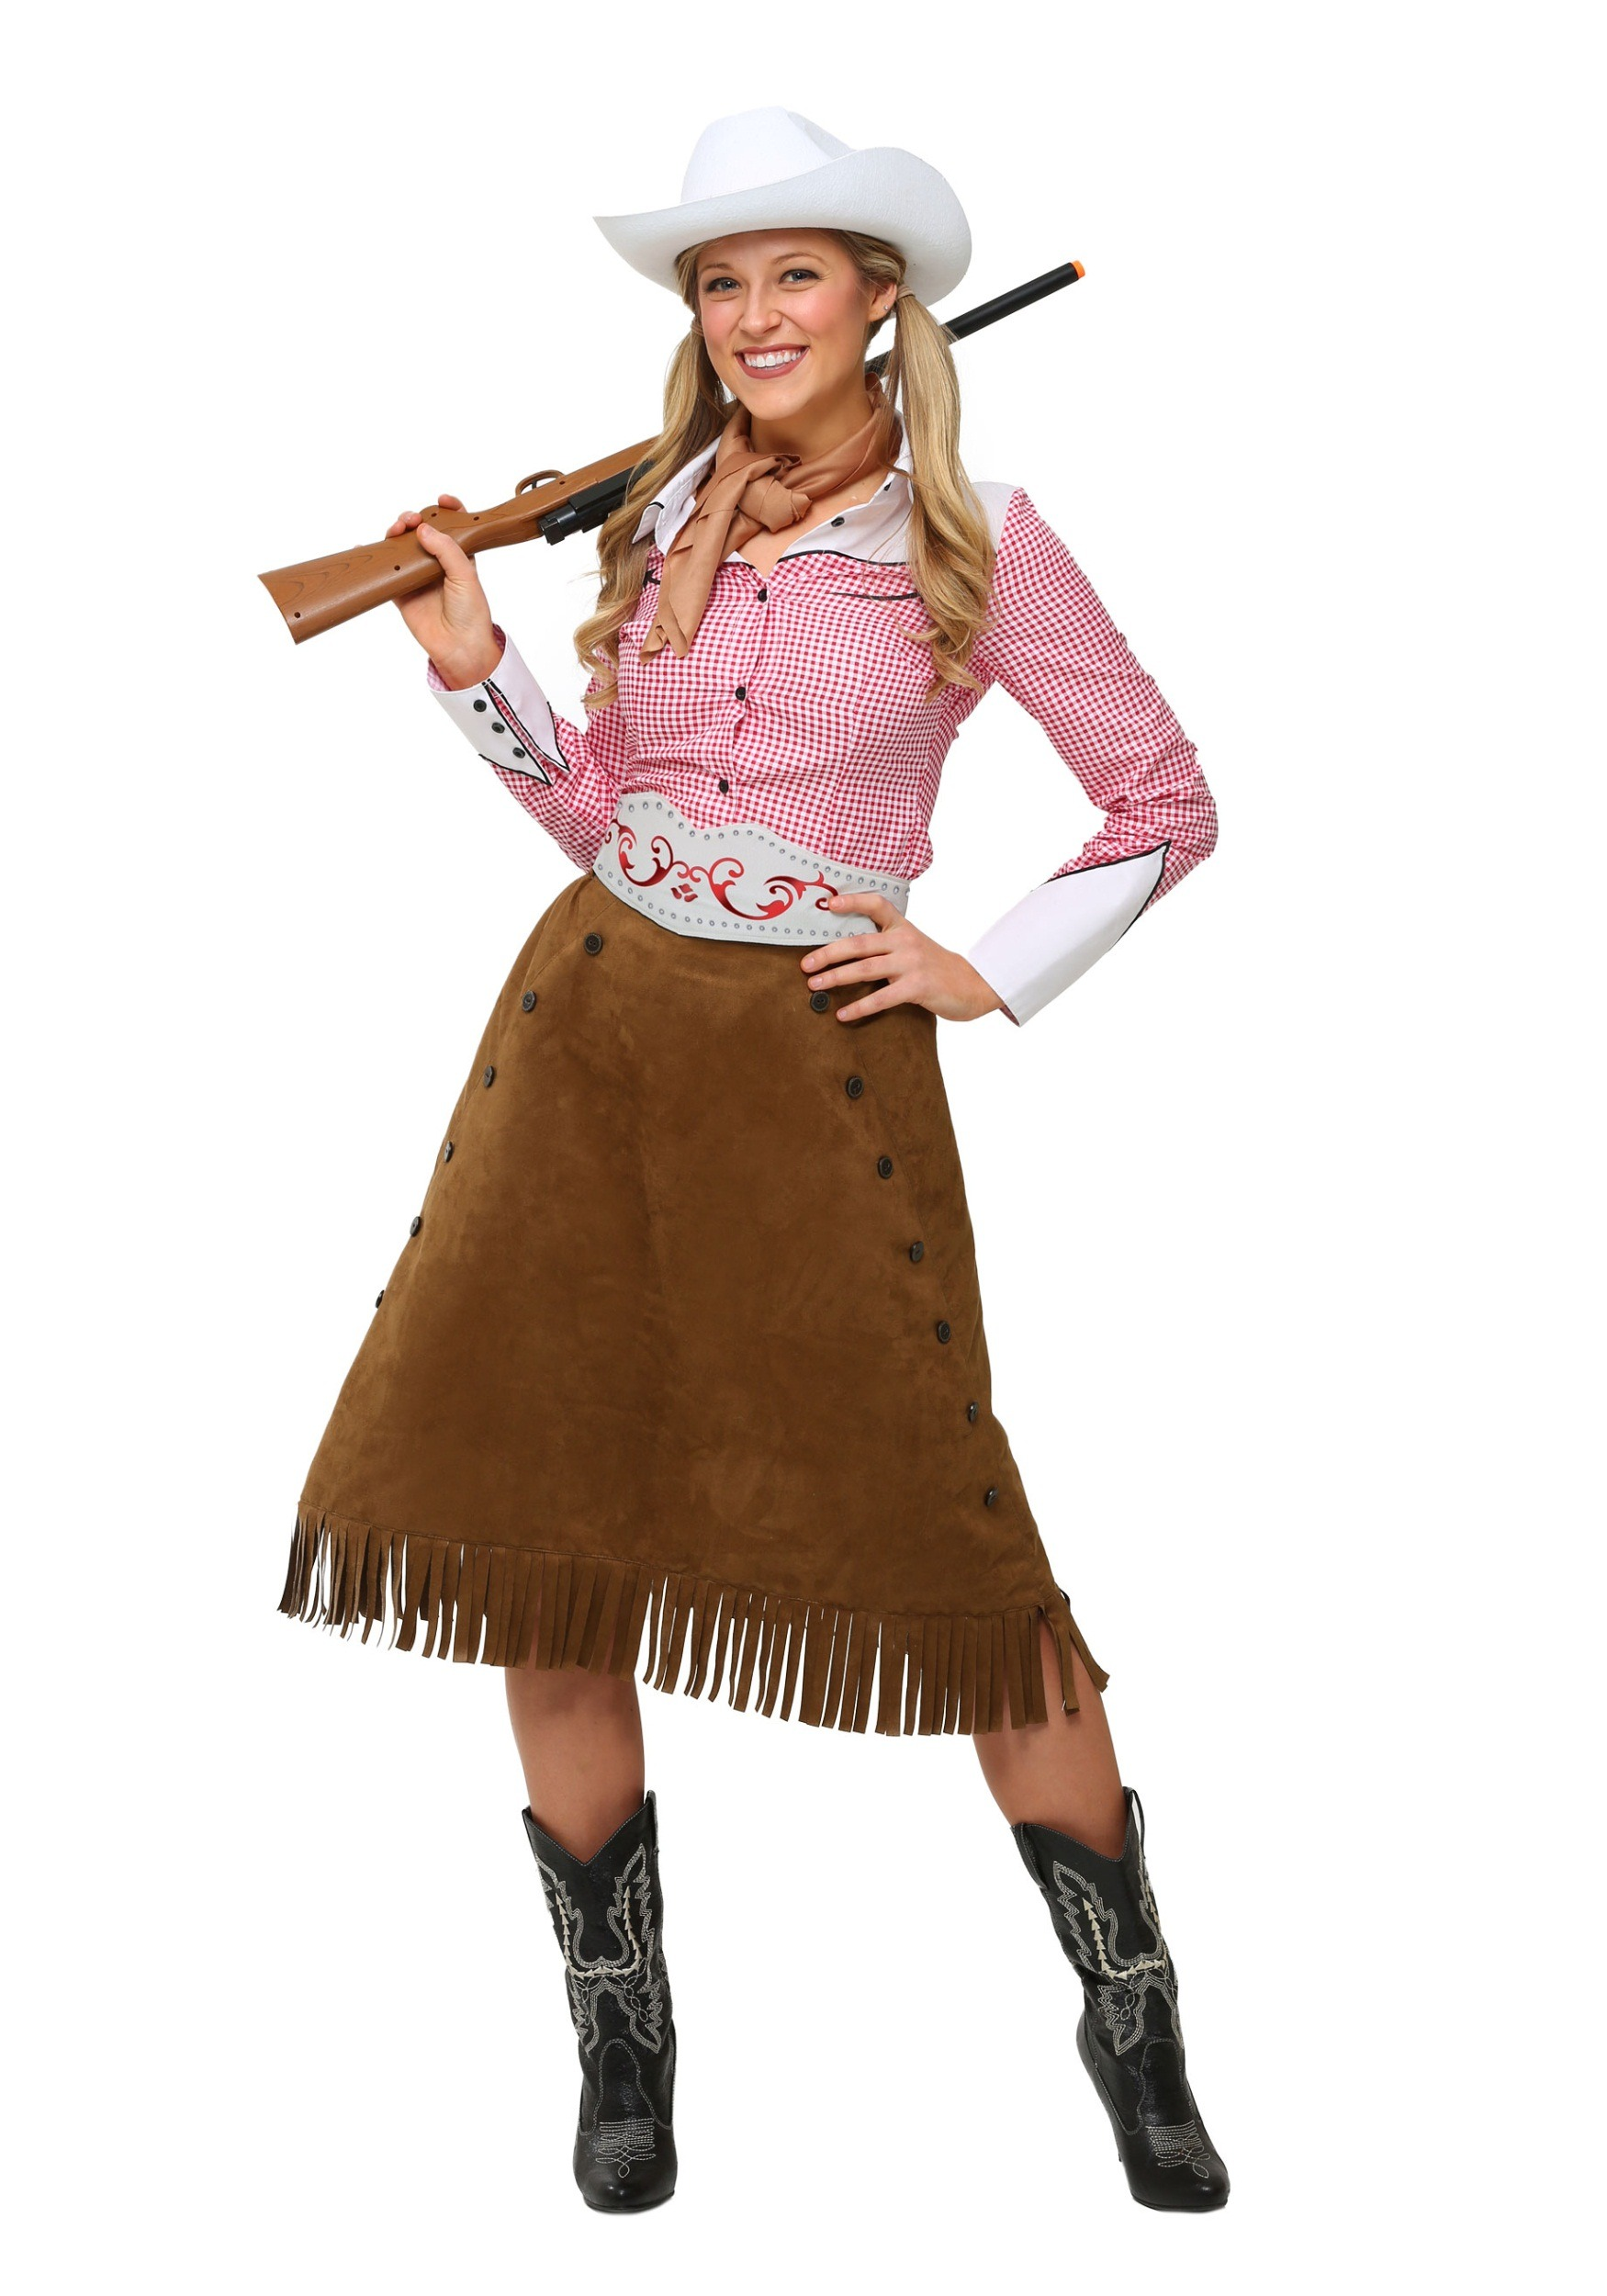 Cowboy costume for girls - photo#20